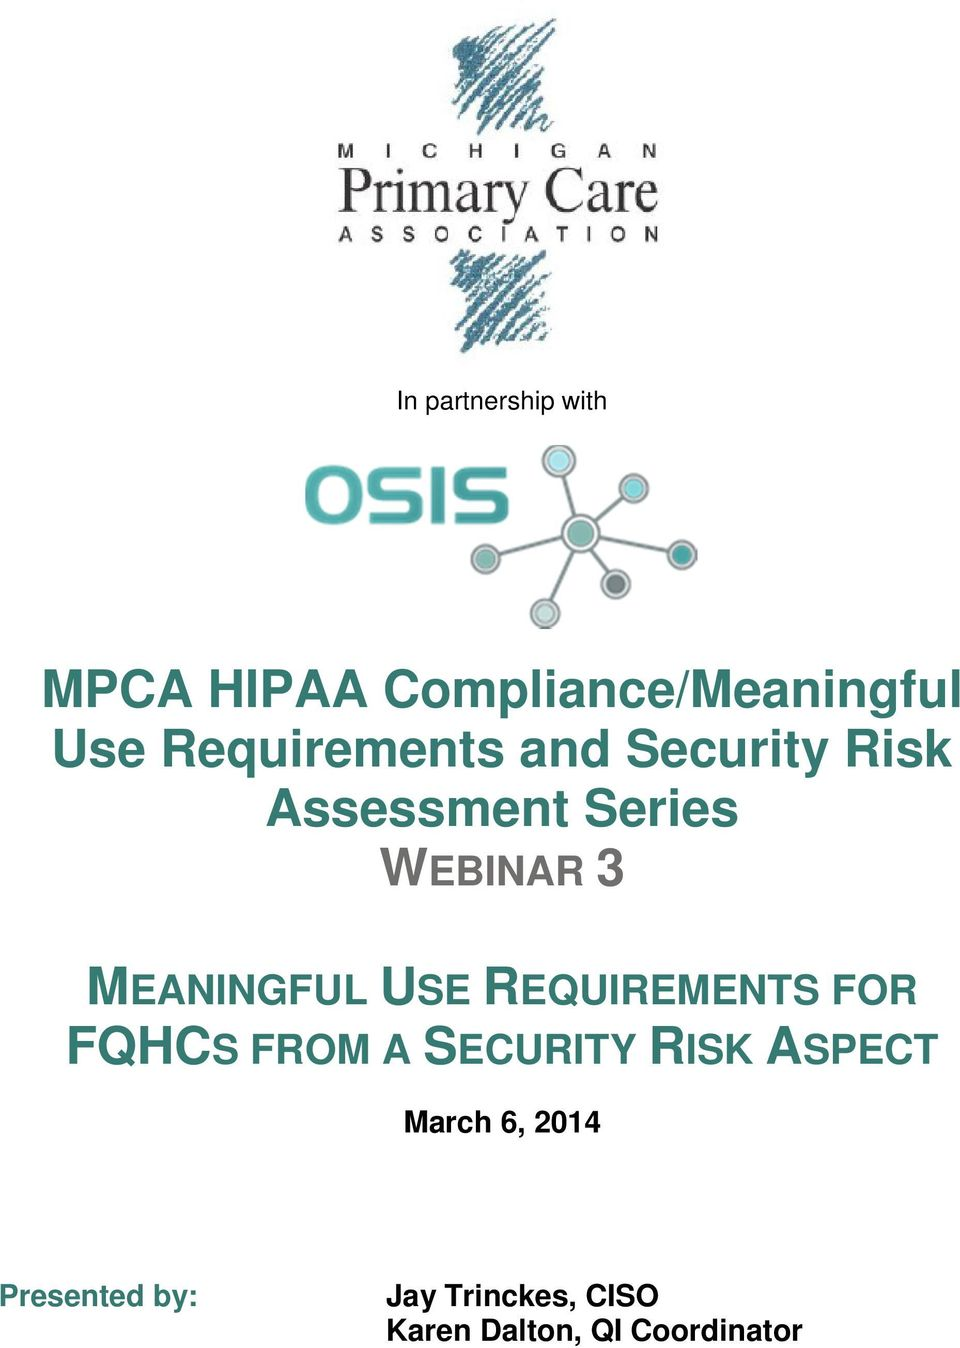 MEANINGFUL USE REQUIREMENTS FOR FQHCS FROM A SECURITY RISK